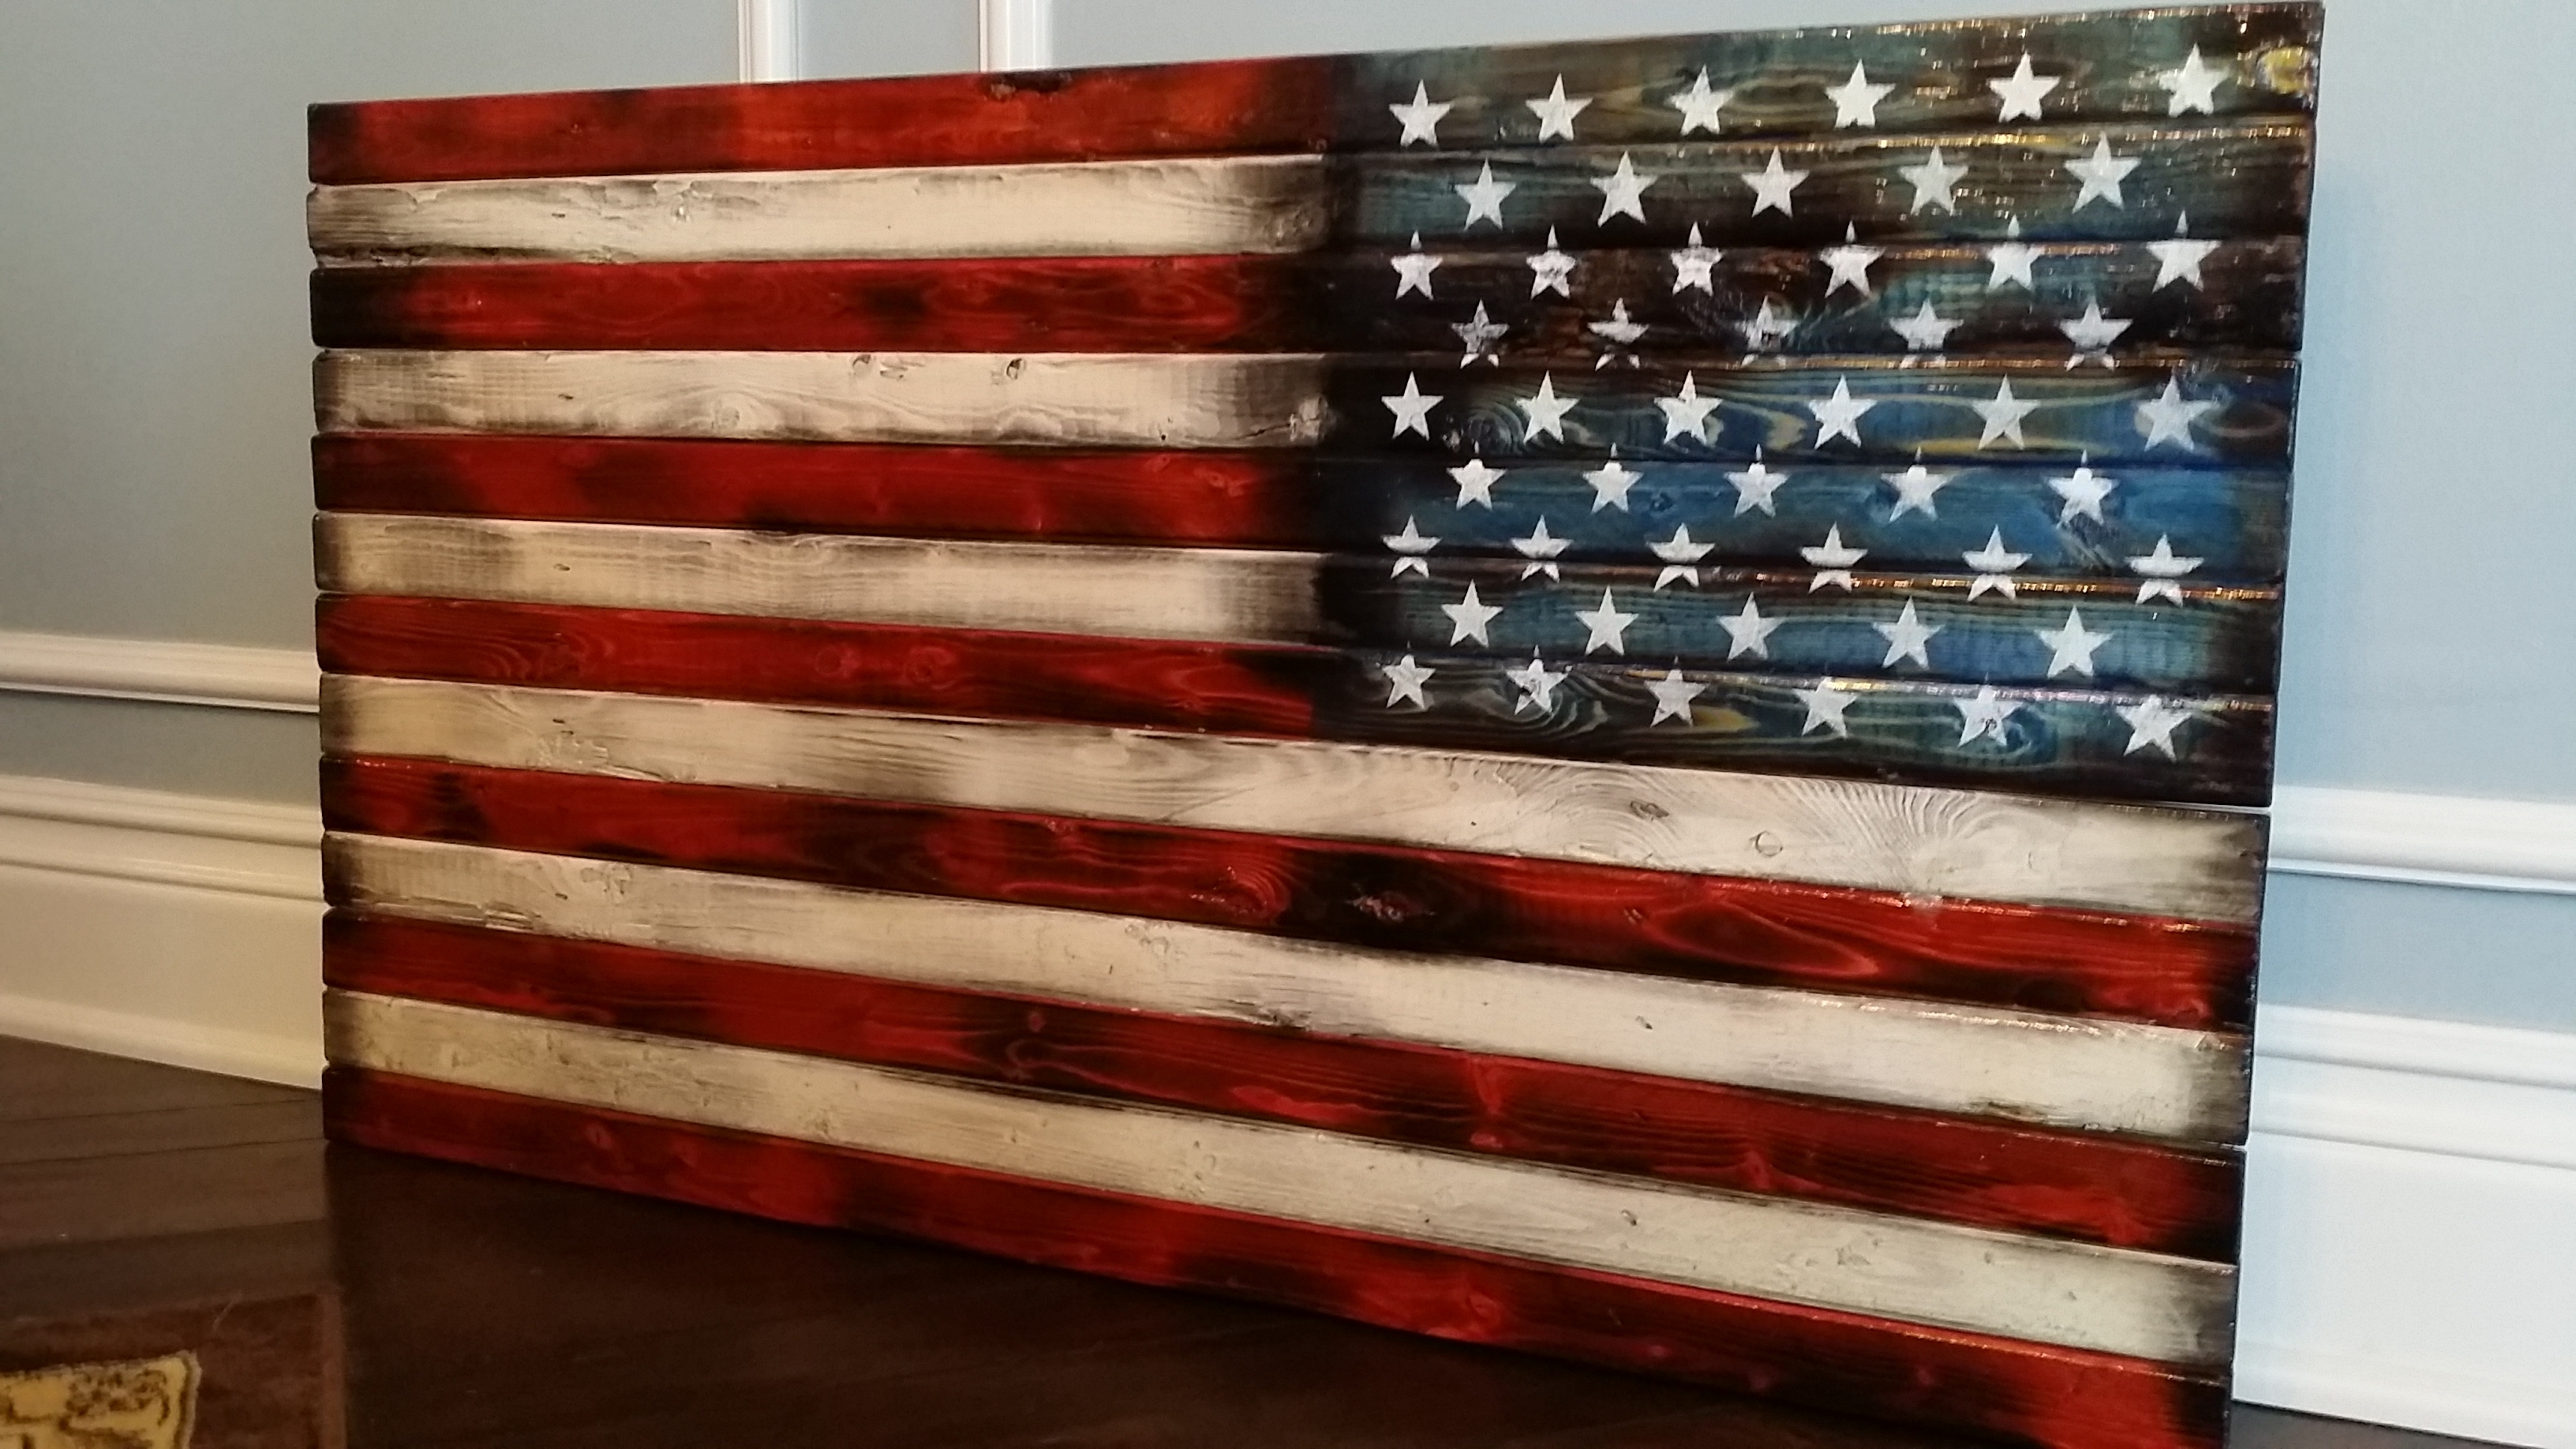 Marvellous Inspiration Wood American Flag Wall Art Best Of Rustic With Best And Newest American Flag Wall Art (View 12 of 15)